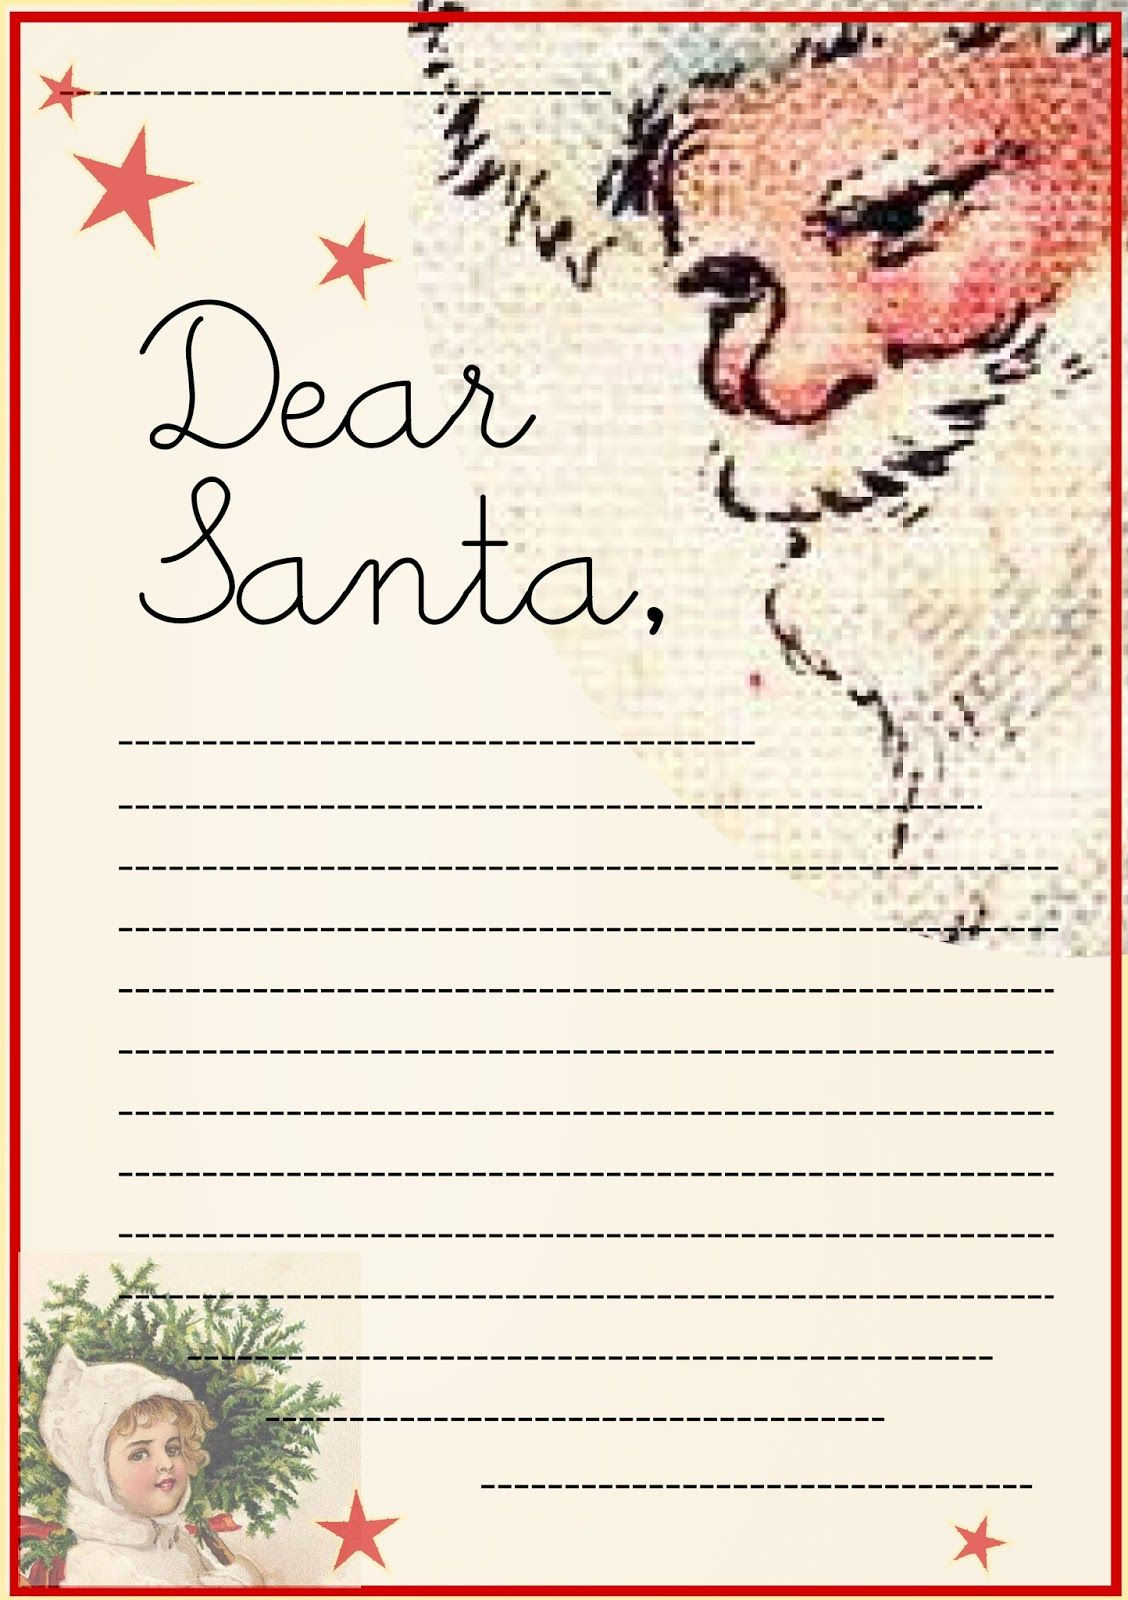 Free printable letter to santa claus template for children diy free printable letter to santa claus template for children diy printables and downloads spiritdancerdesigns Choice Image